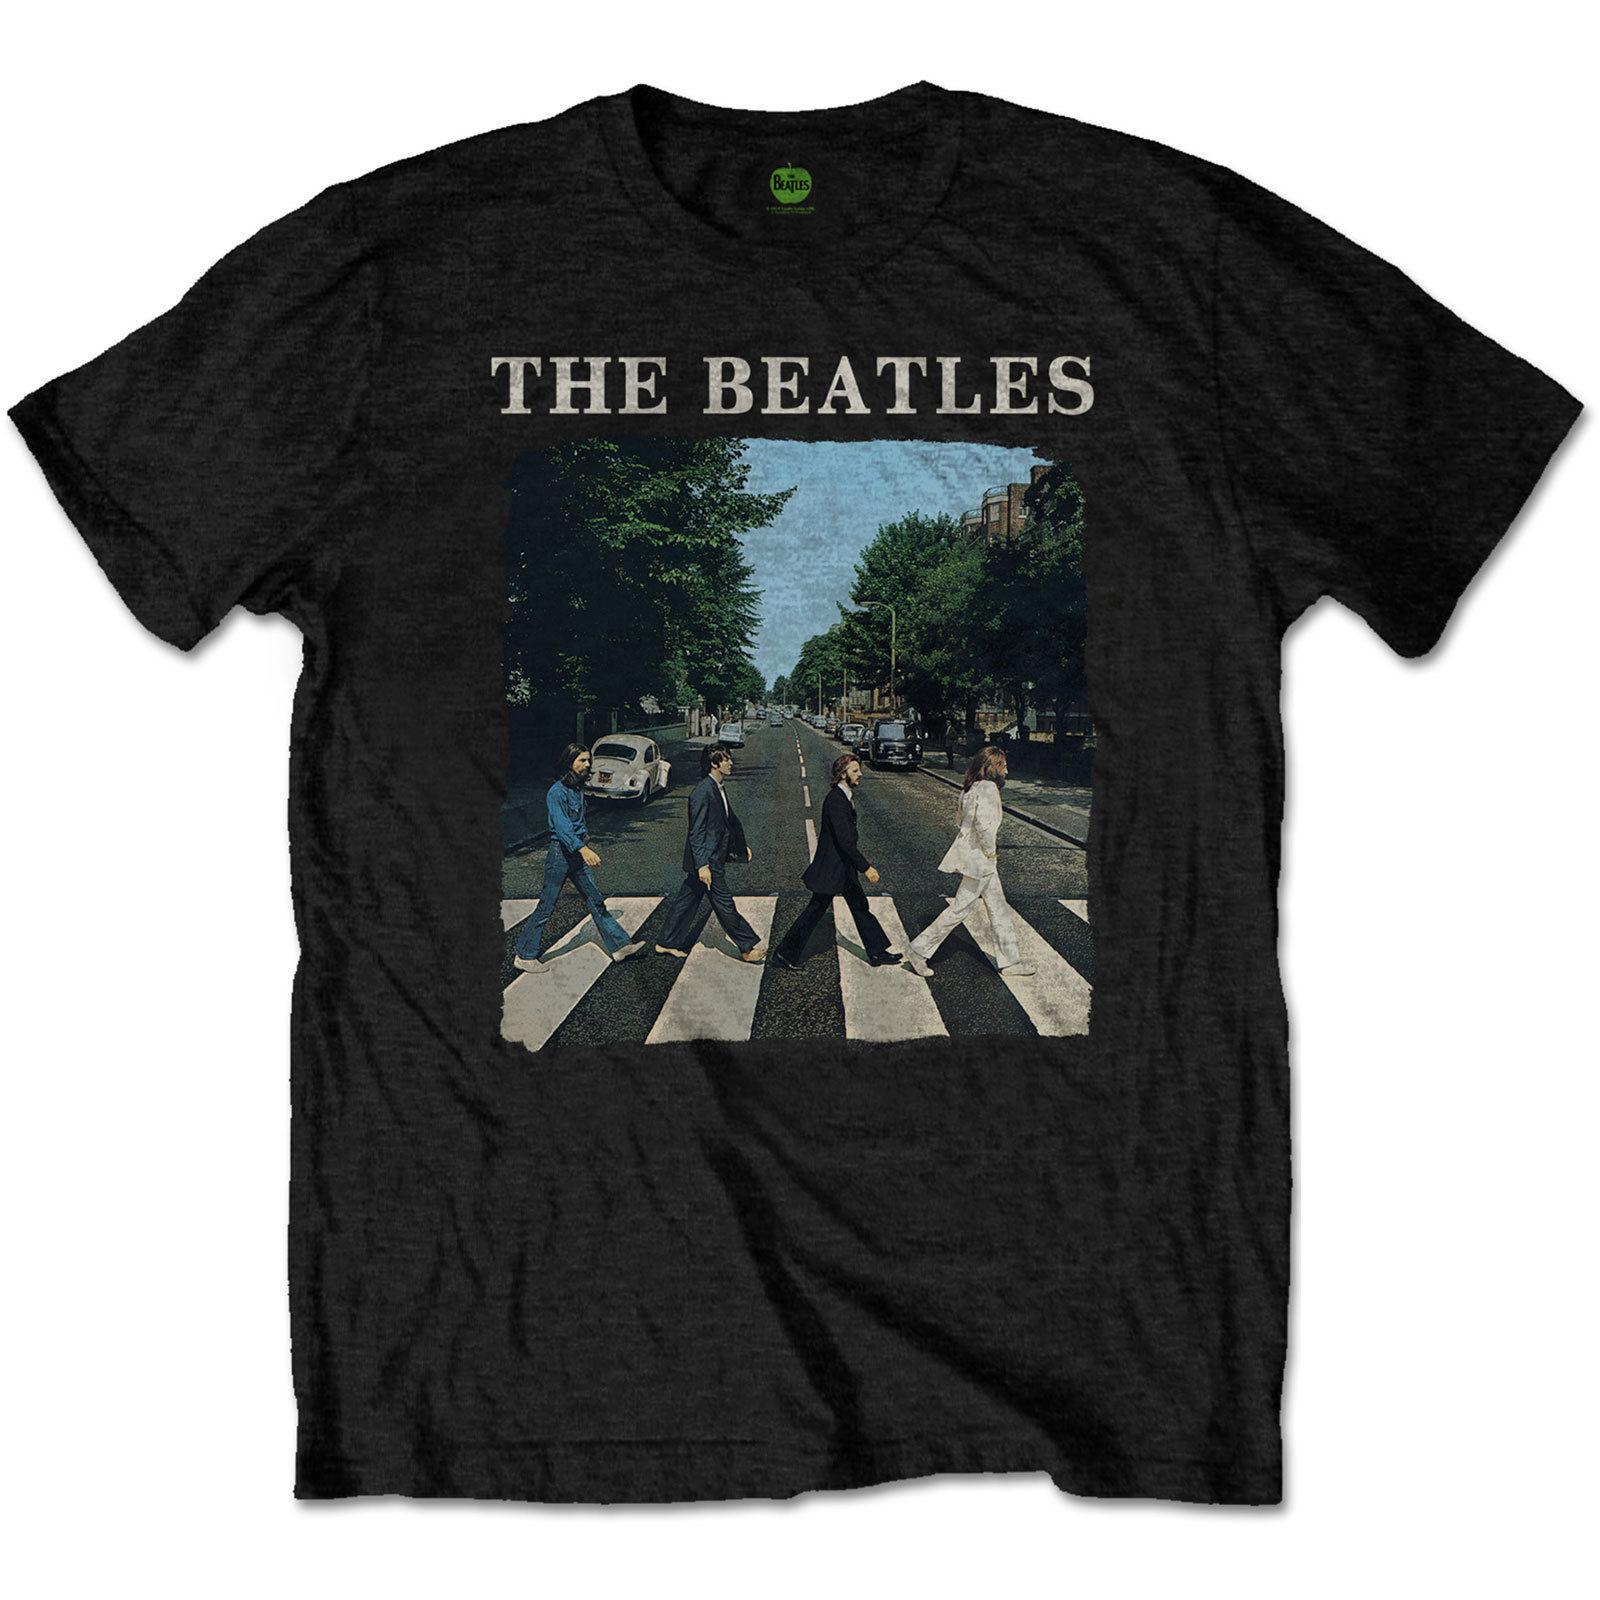 ed76cb391 Cheap Vintage Beatles T Shirts - DREAMWORKS